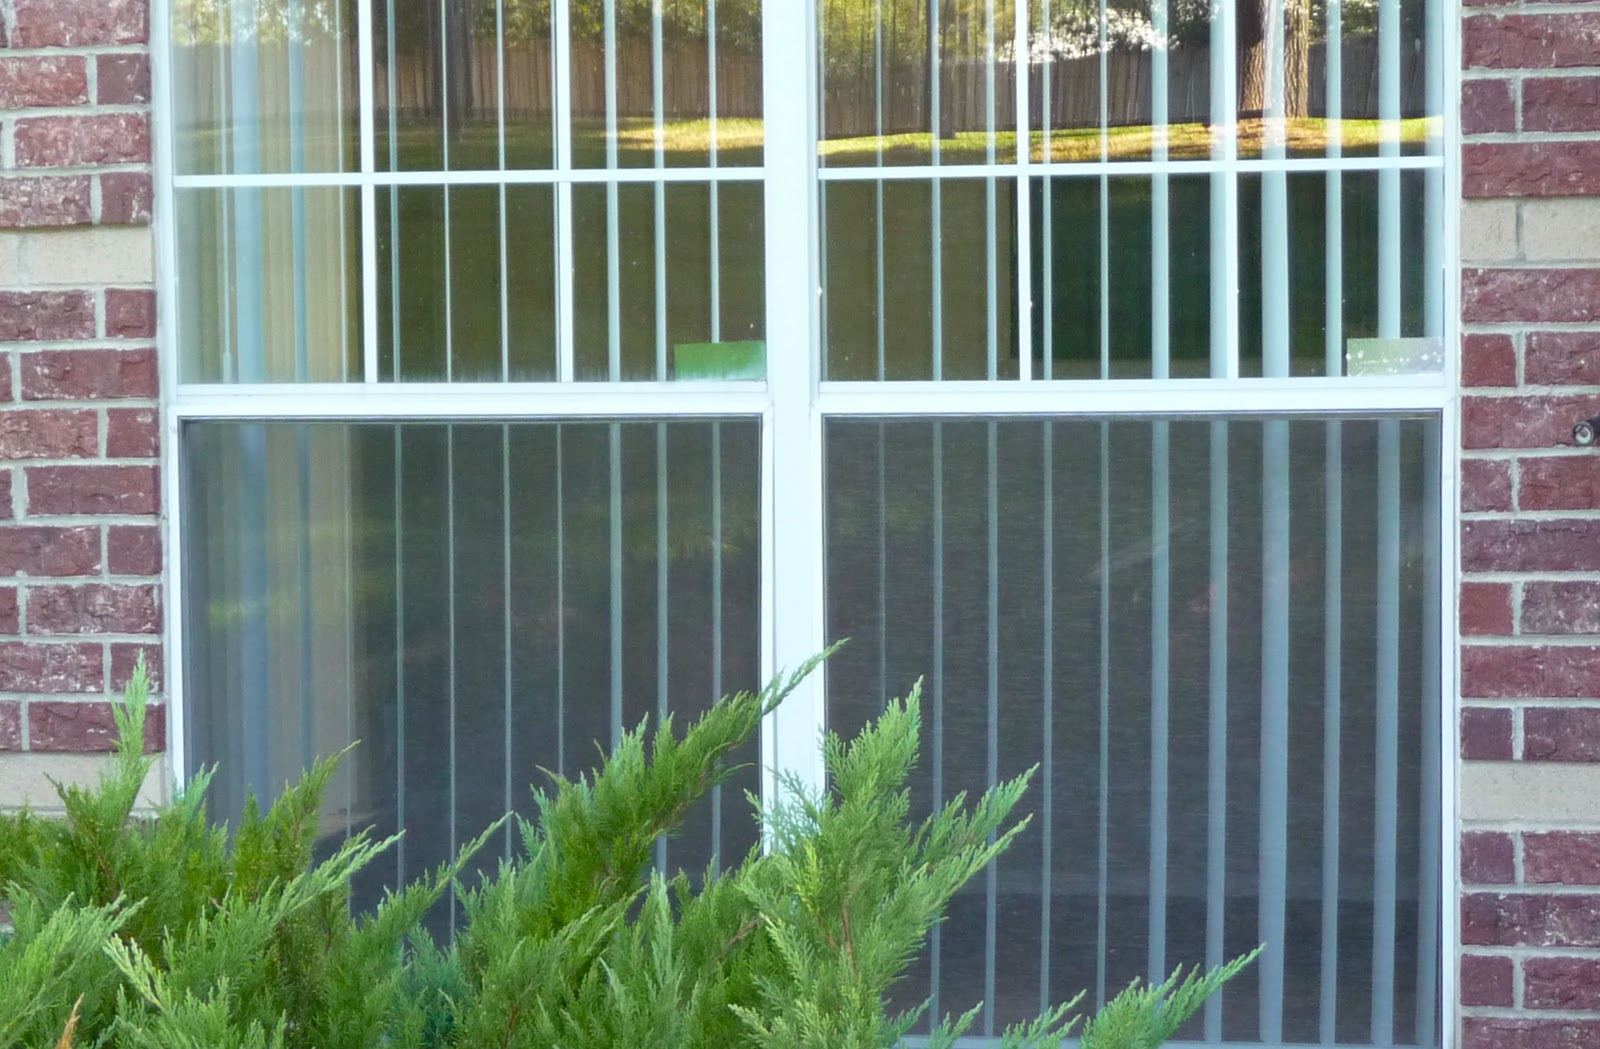 Apartment Patio Blinds: An easy way to hide vertical blinds. Good ...